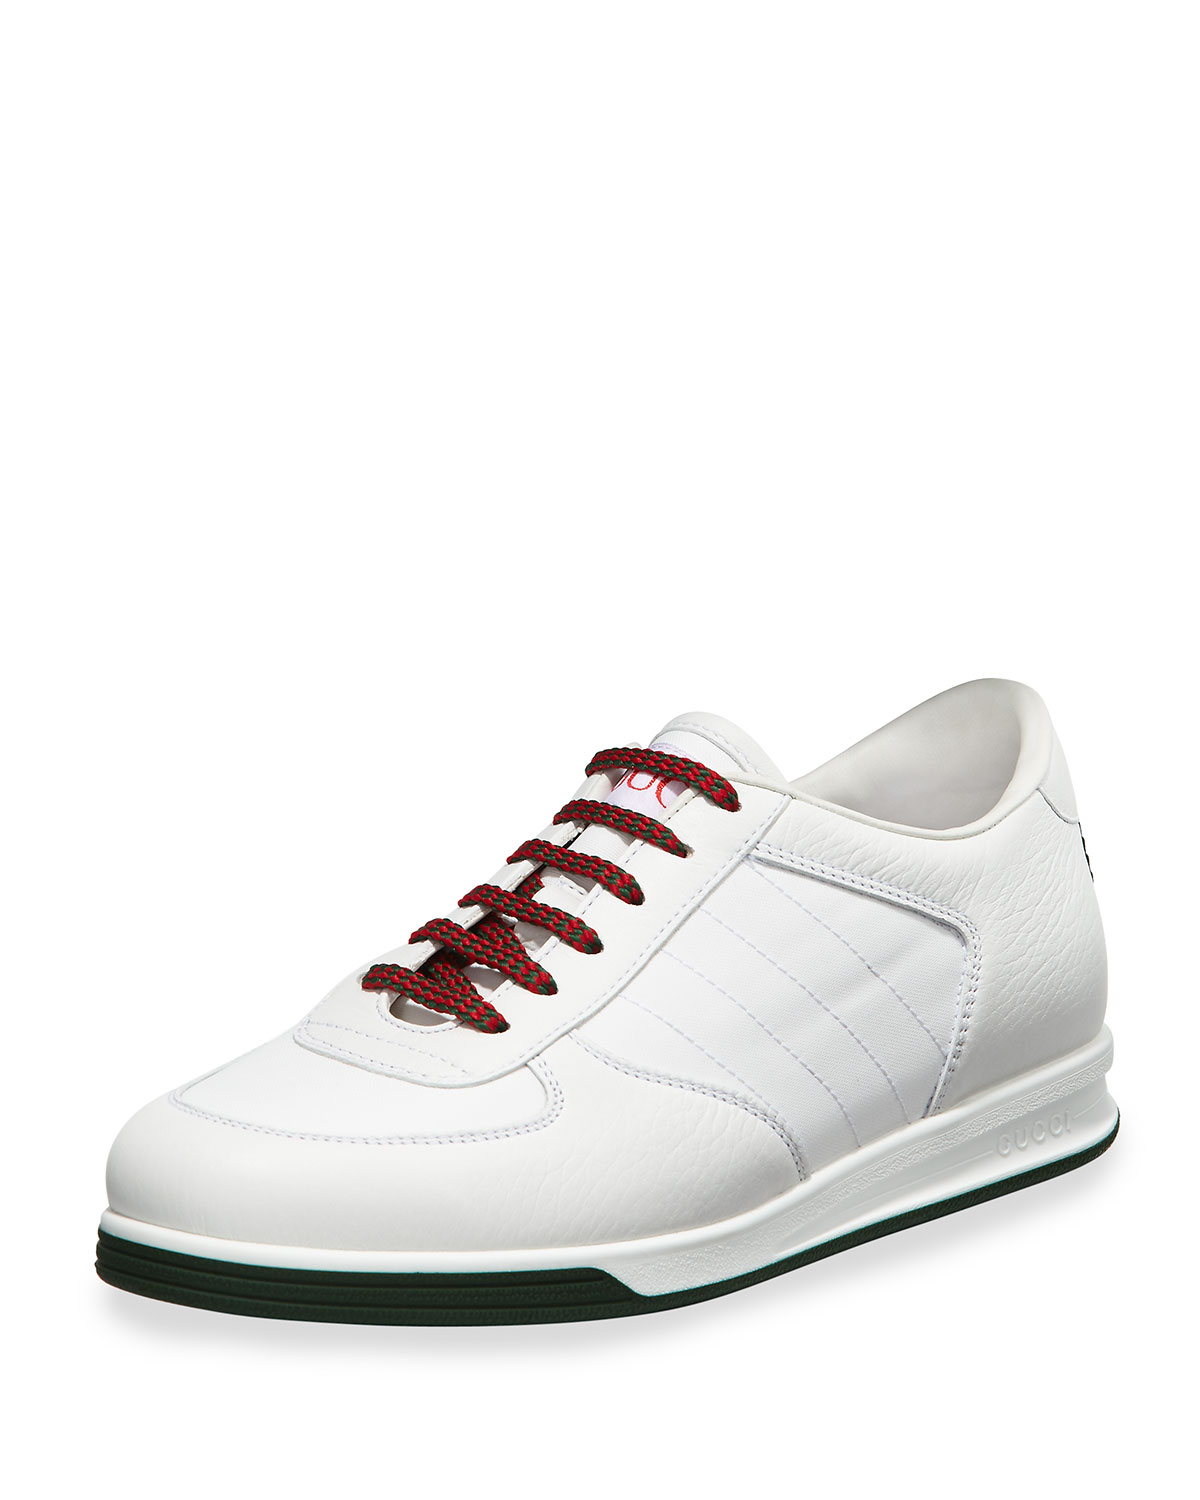 4f97204e6e6 Gucci 1984 Low Top Leather Sneaker